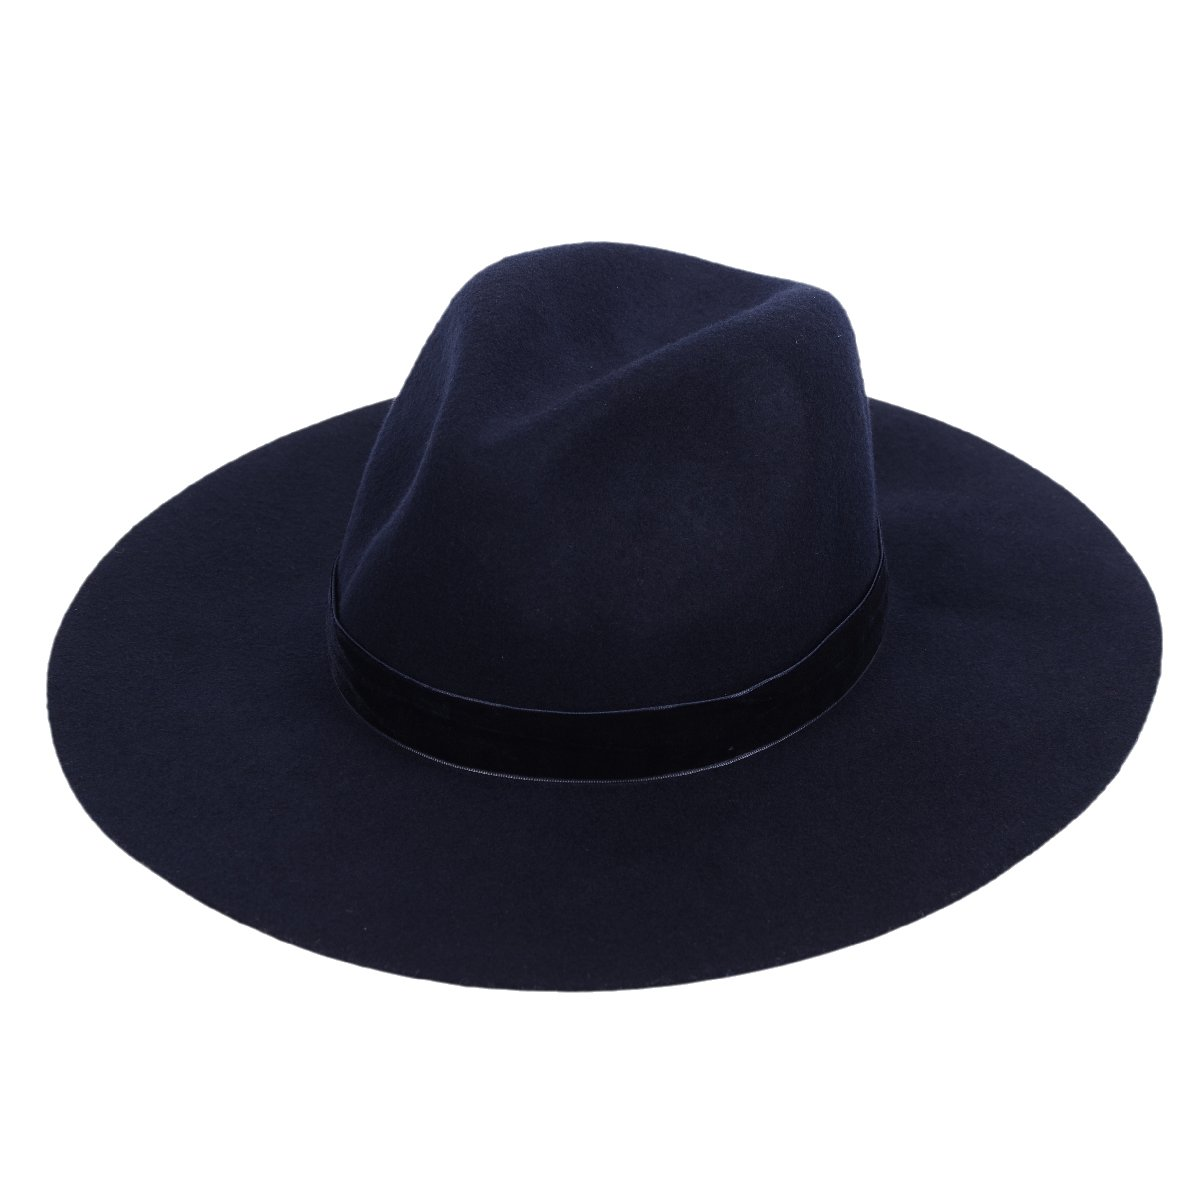 Panama Felt Hat Women's Fedora Floppy Hat with Wide Brim and Chic Band(Navy Blue)